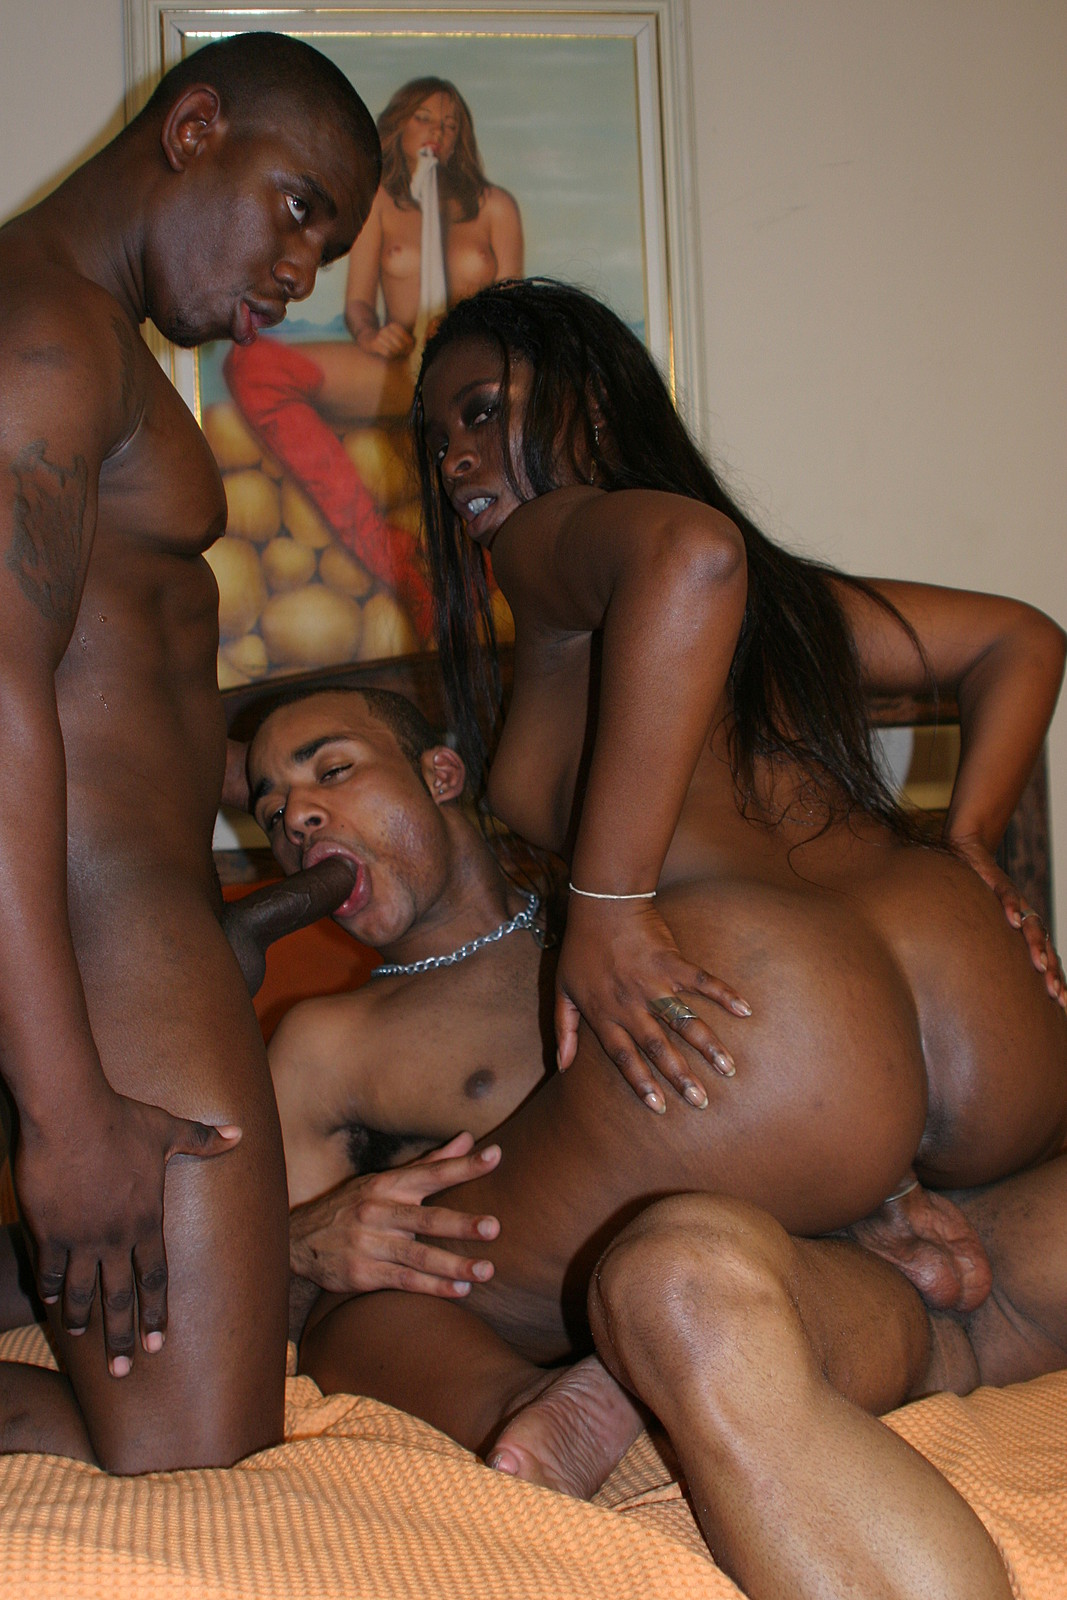 Two Bisexual Men Fucking Black Woman - Interracial-5445